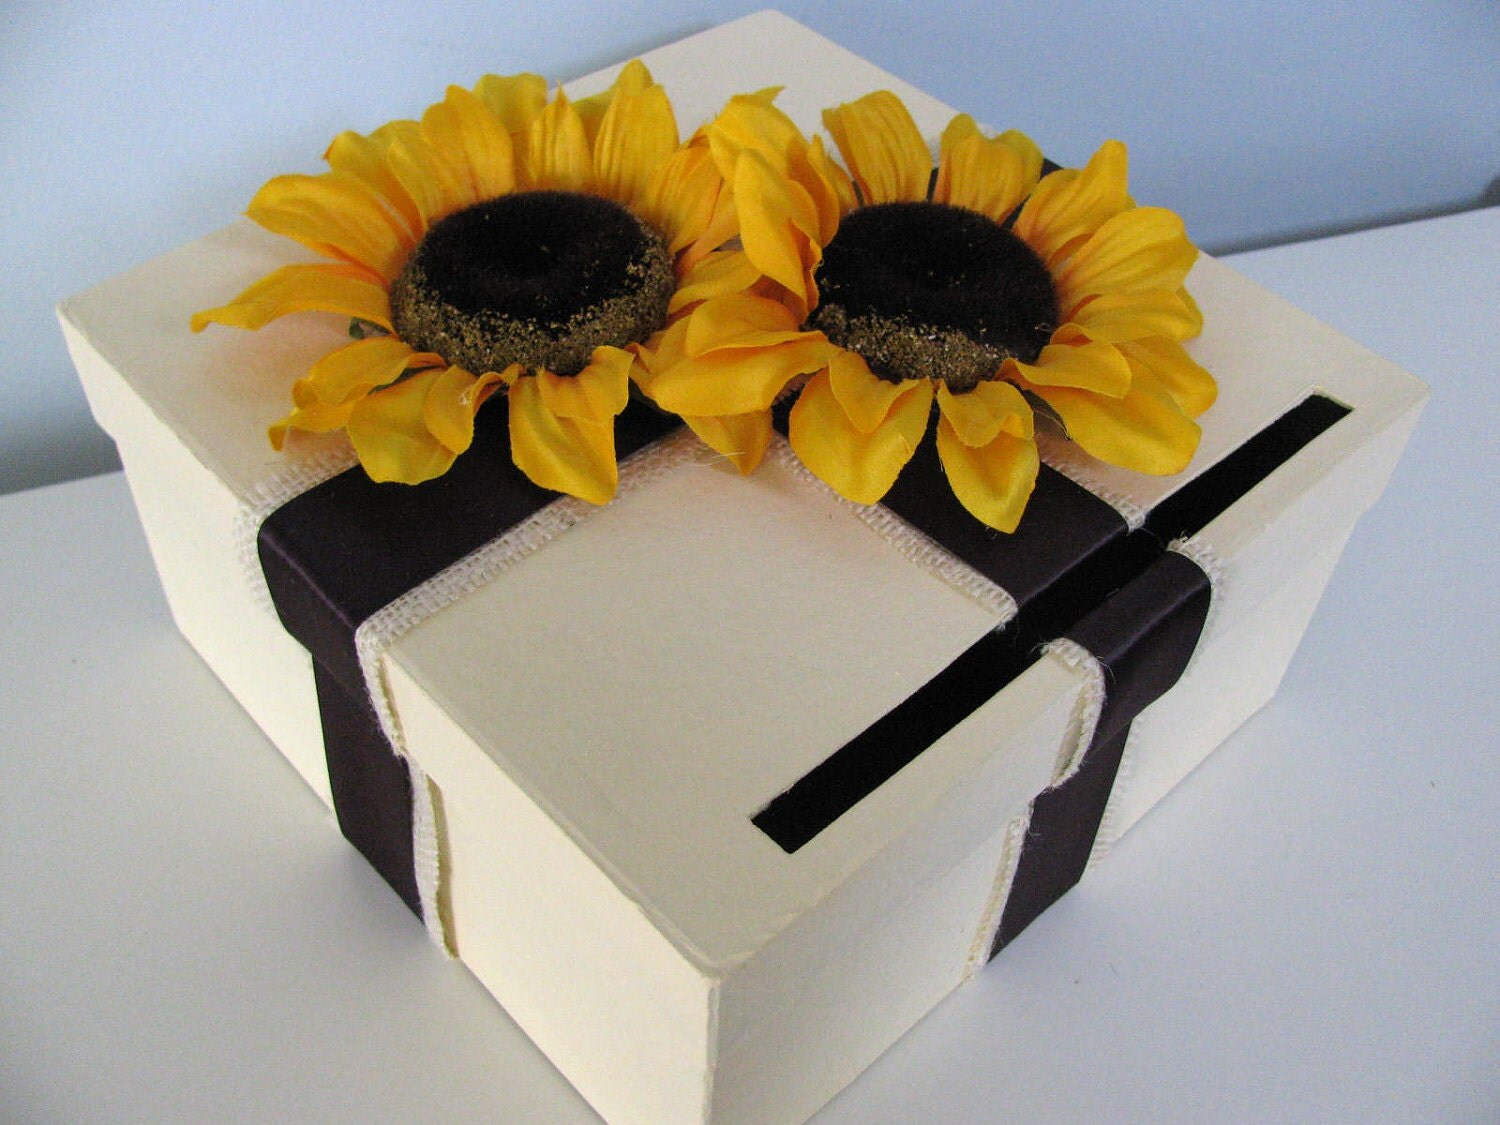 Can Customize Flowers and Colors - Ivory Wedding Card Box-Shown with layered Burlap, Eggplant Ribbon and Large Yellow Sunflowers